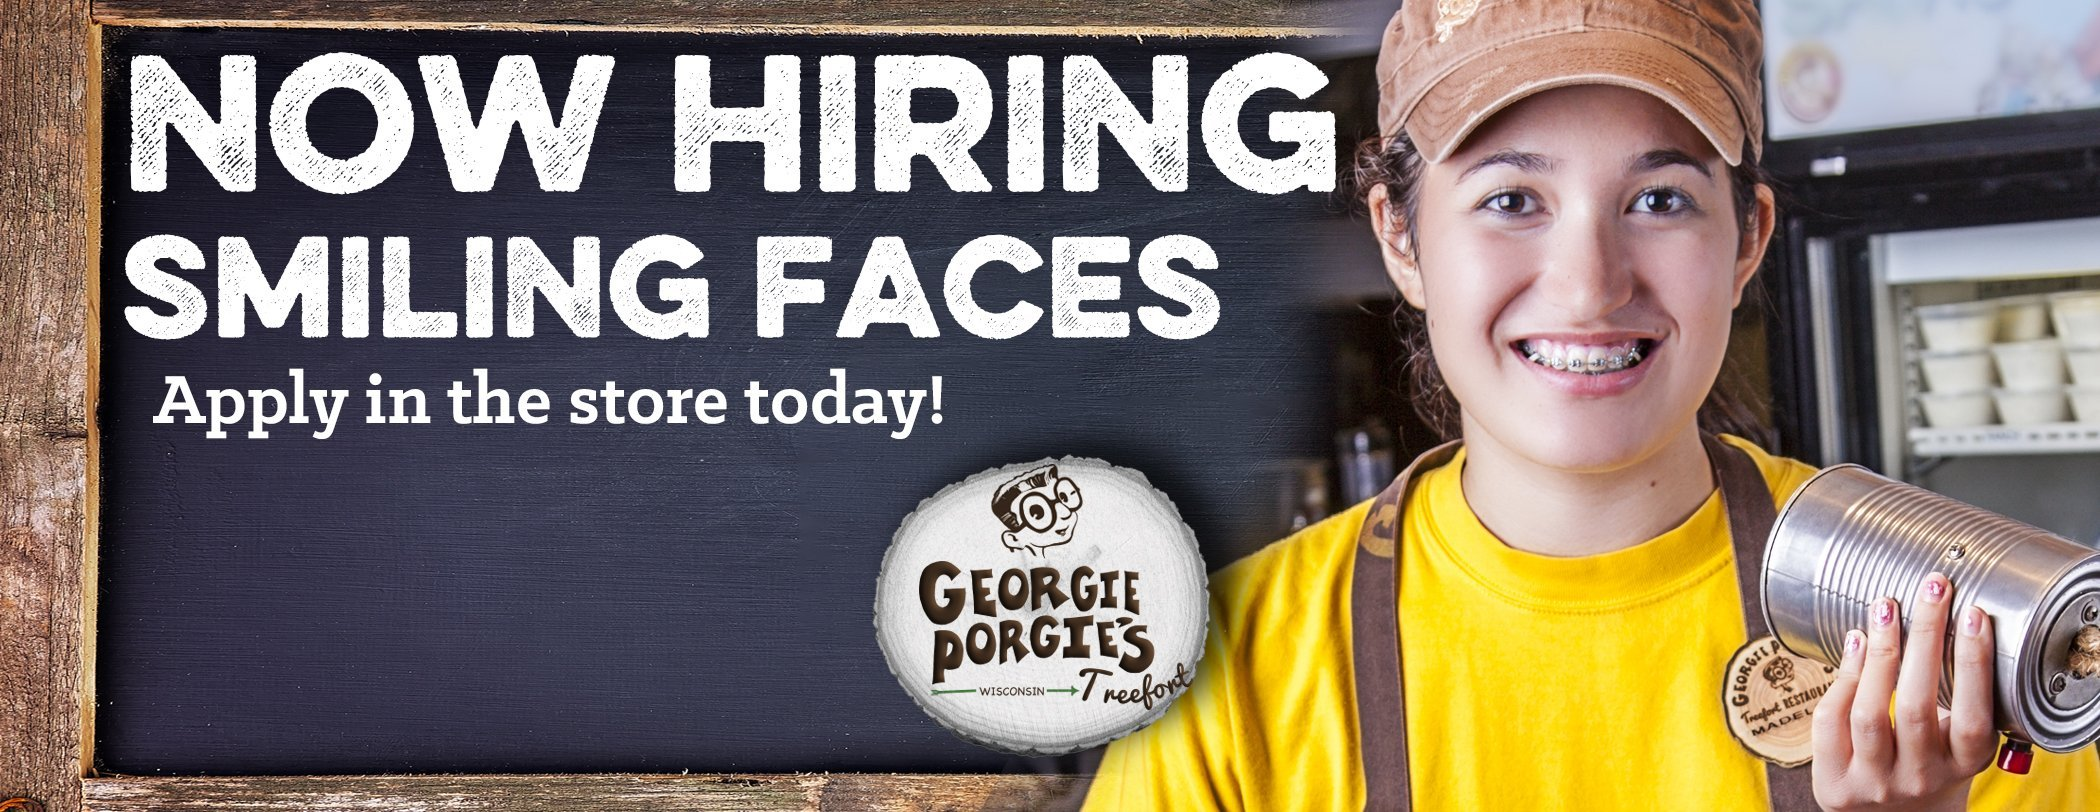 Now Hiring at Georgie Porgies